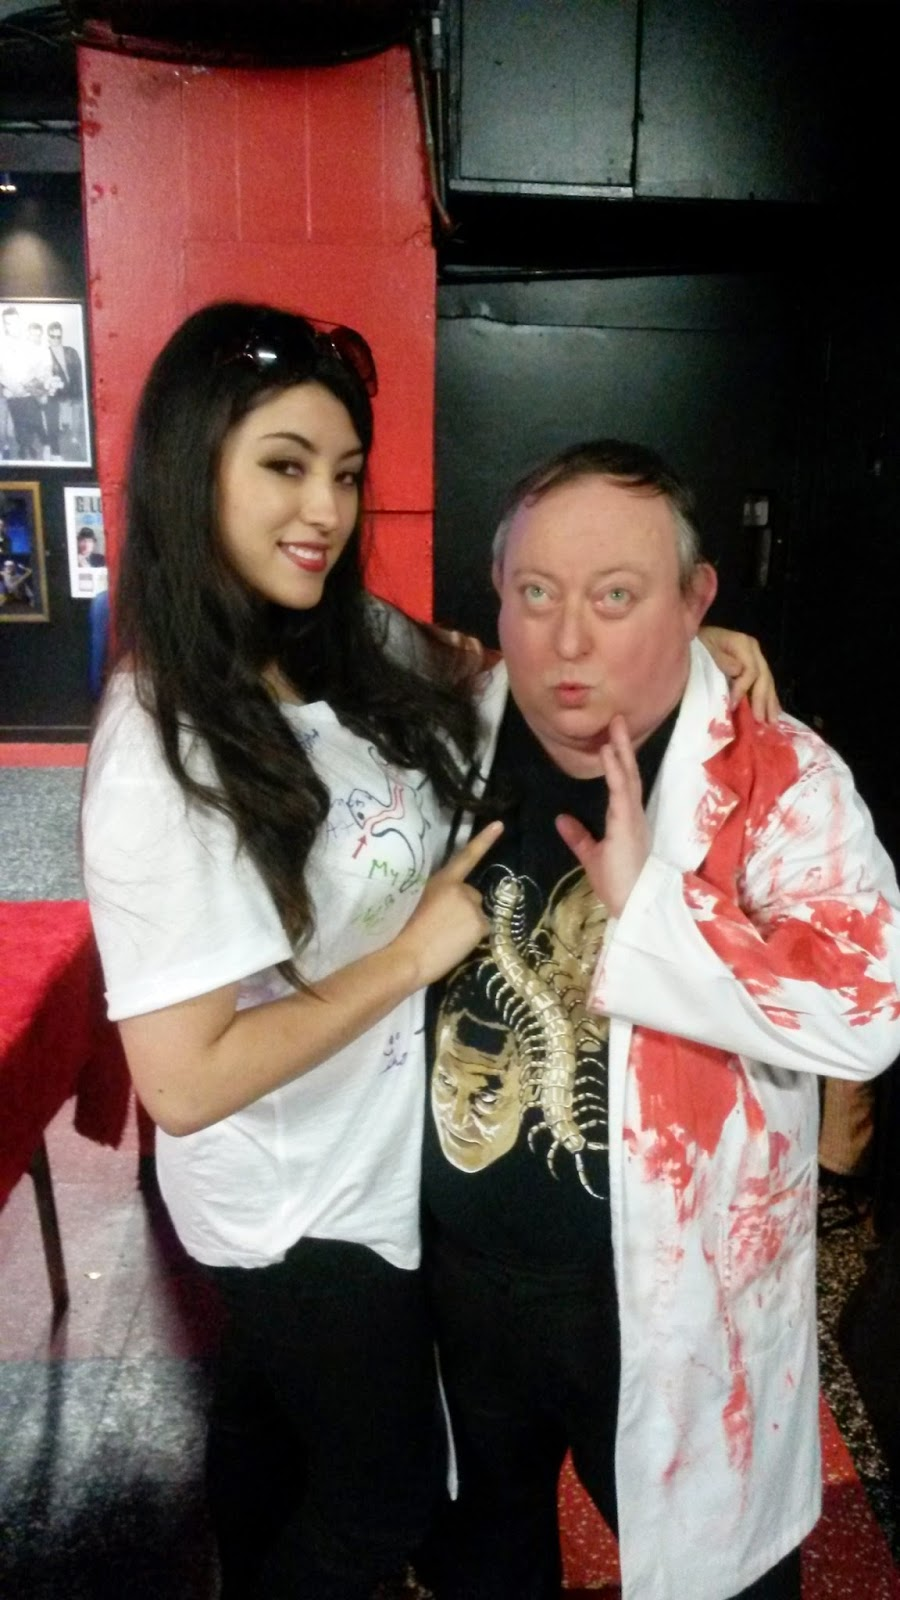 midnight media stuff camden film fair laurence r harvey and emma